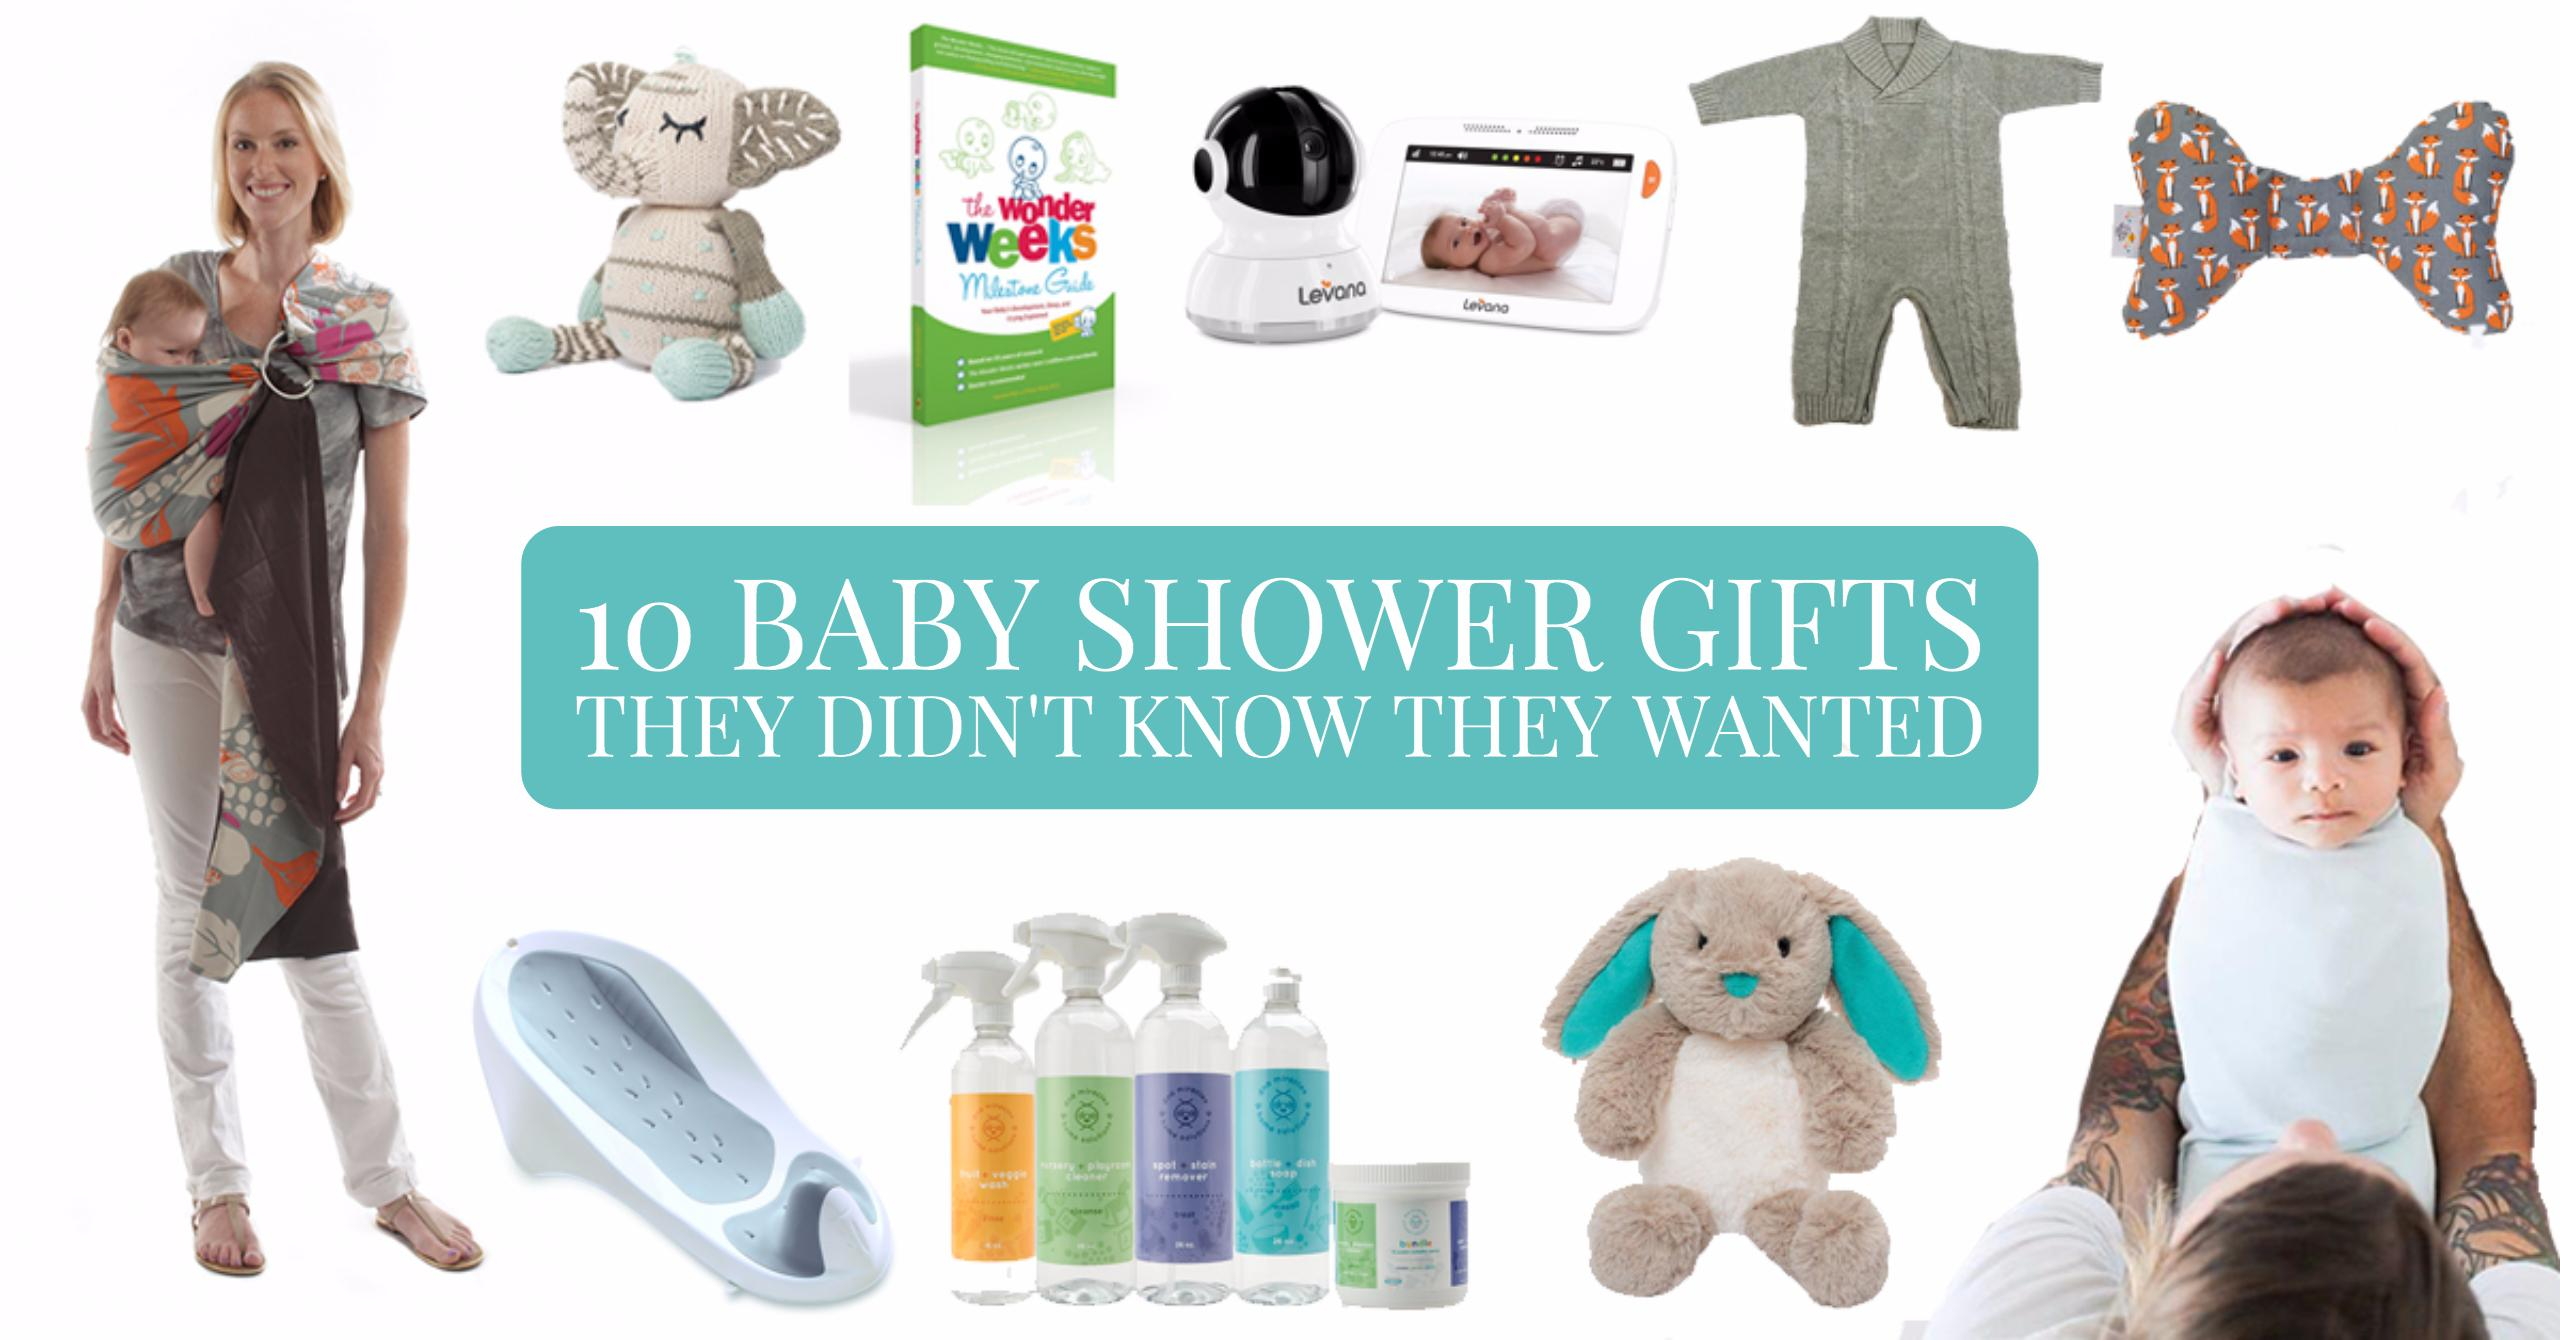 10 Baby Shower Gifts They Didn't Know They Wanted